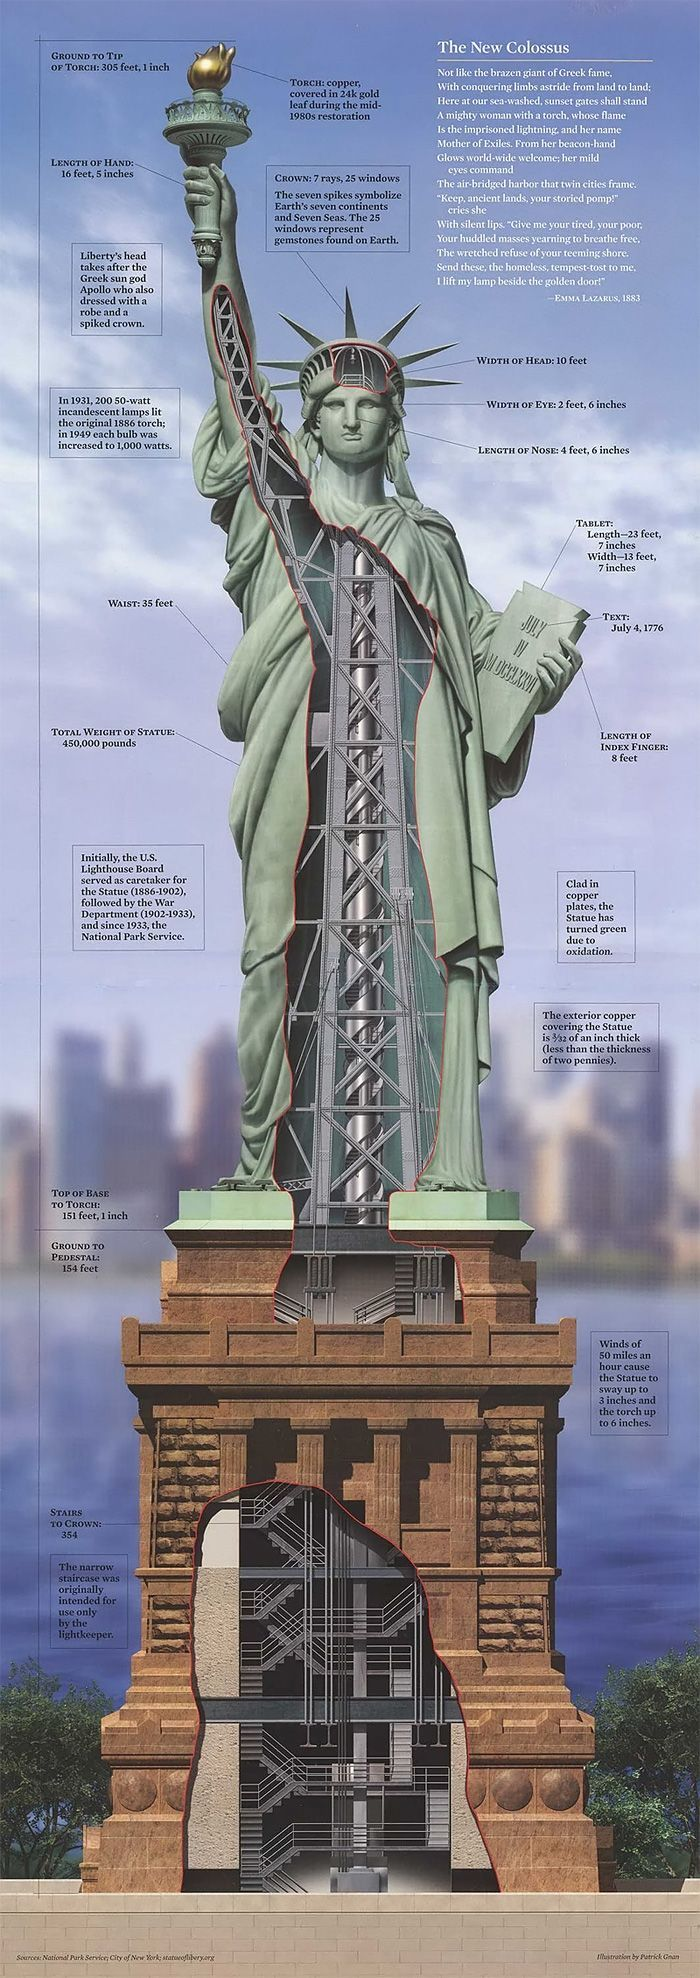 How to see the statue of liberty a bit of history other reasons how to see the statue of liberty a bit of history other reasons the lady is so awesome new york pinterest liberty history and city buycottarizona Gallery